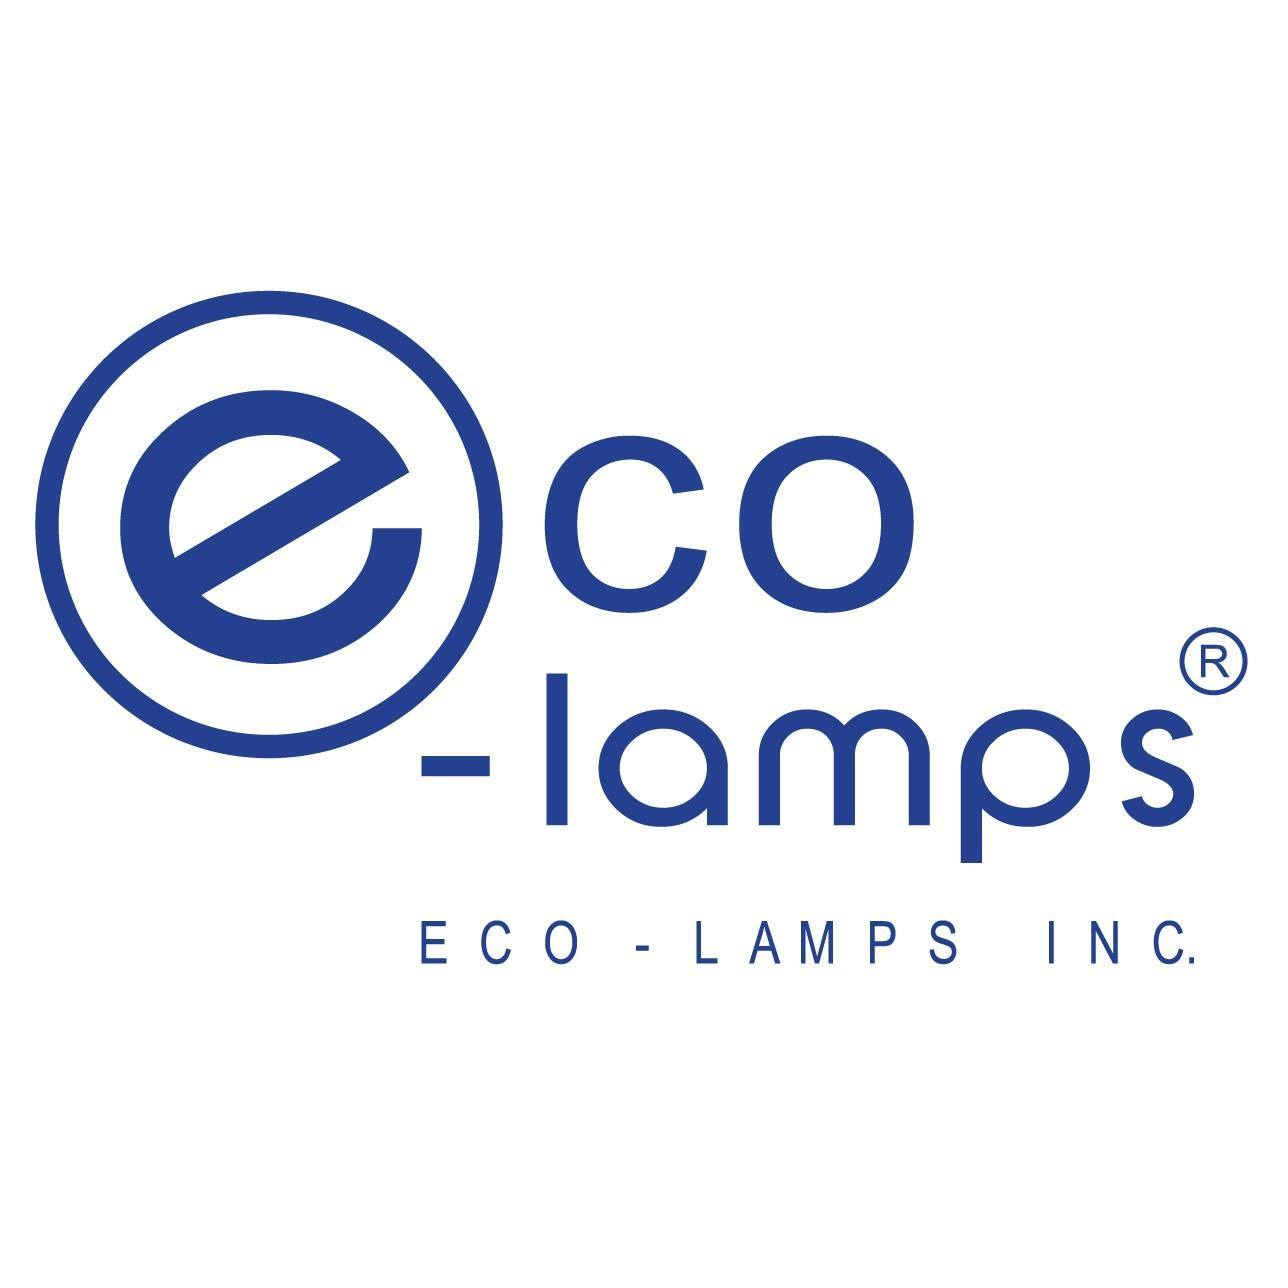 Eco-Lamps